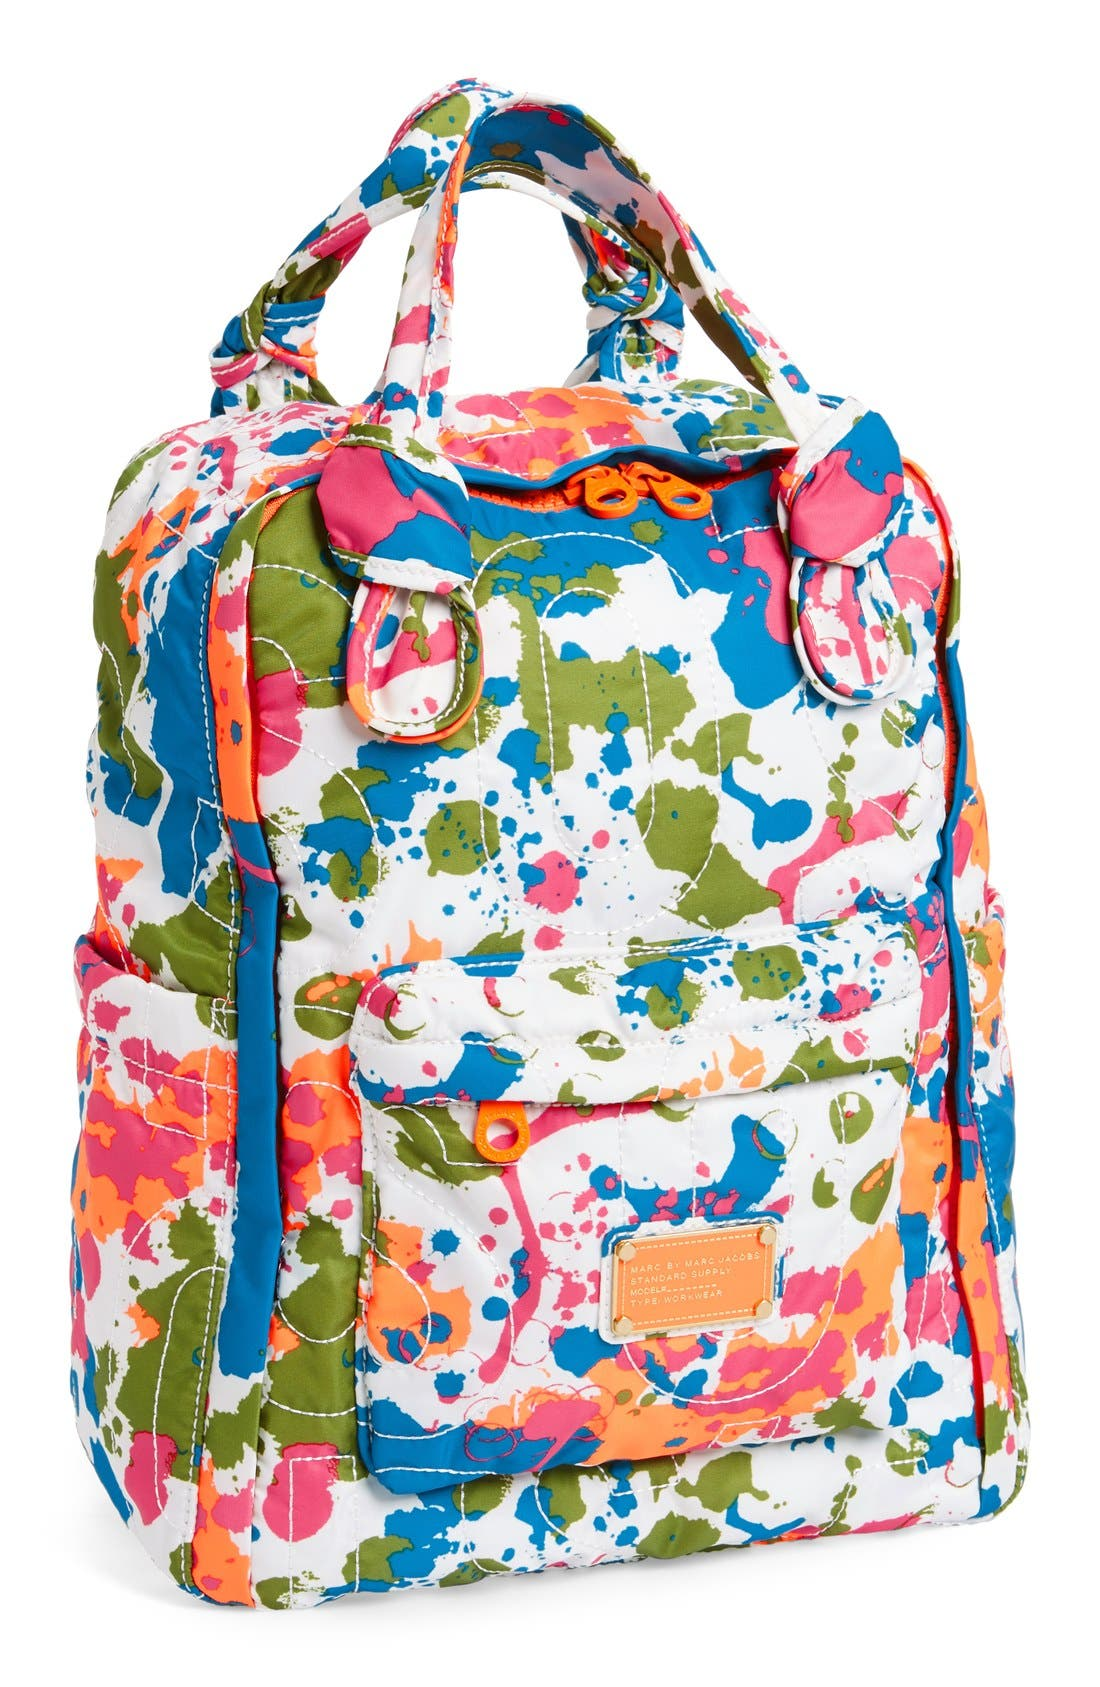 Alternate Image 1 Selected - MARC BY MARC JACOBS 'Pretty' Backpack